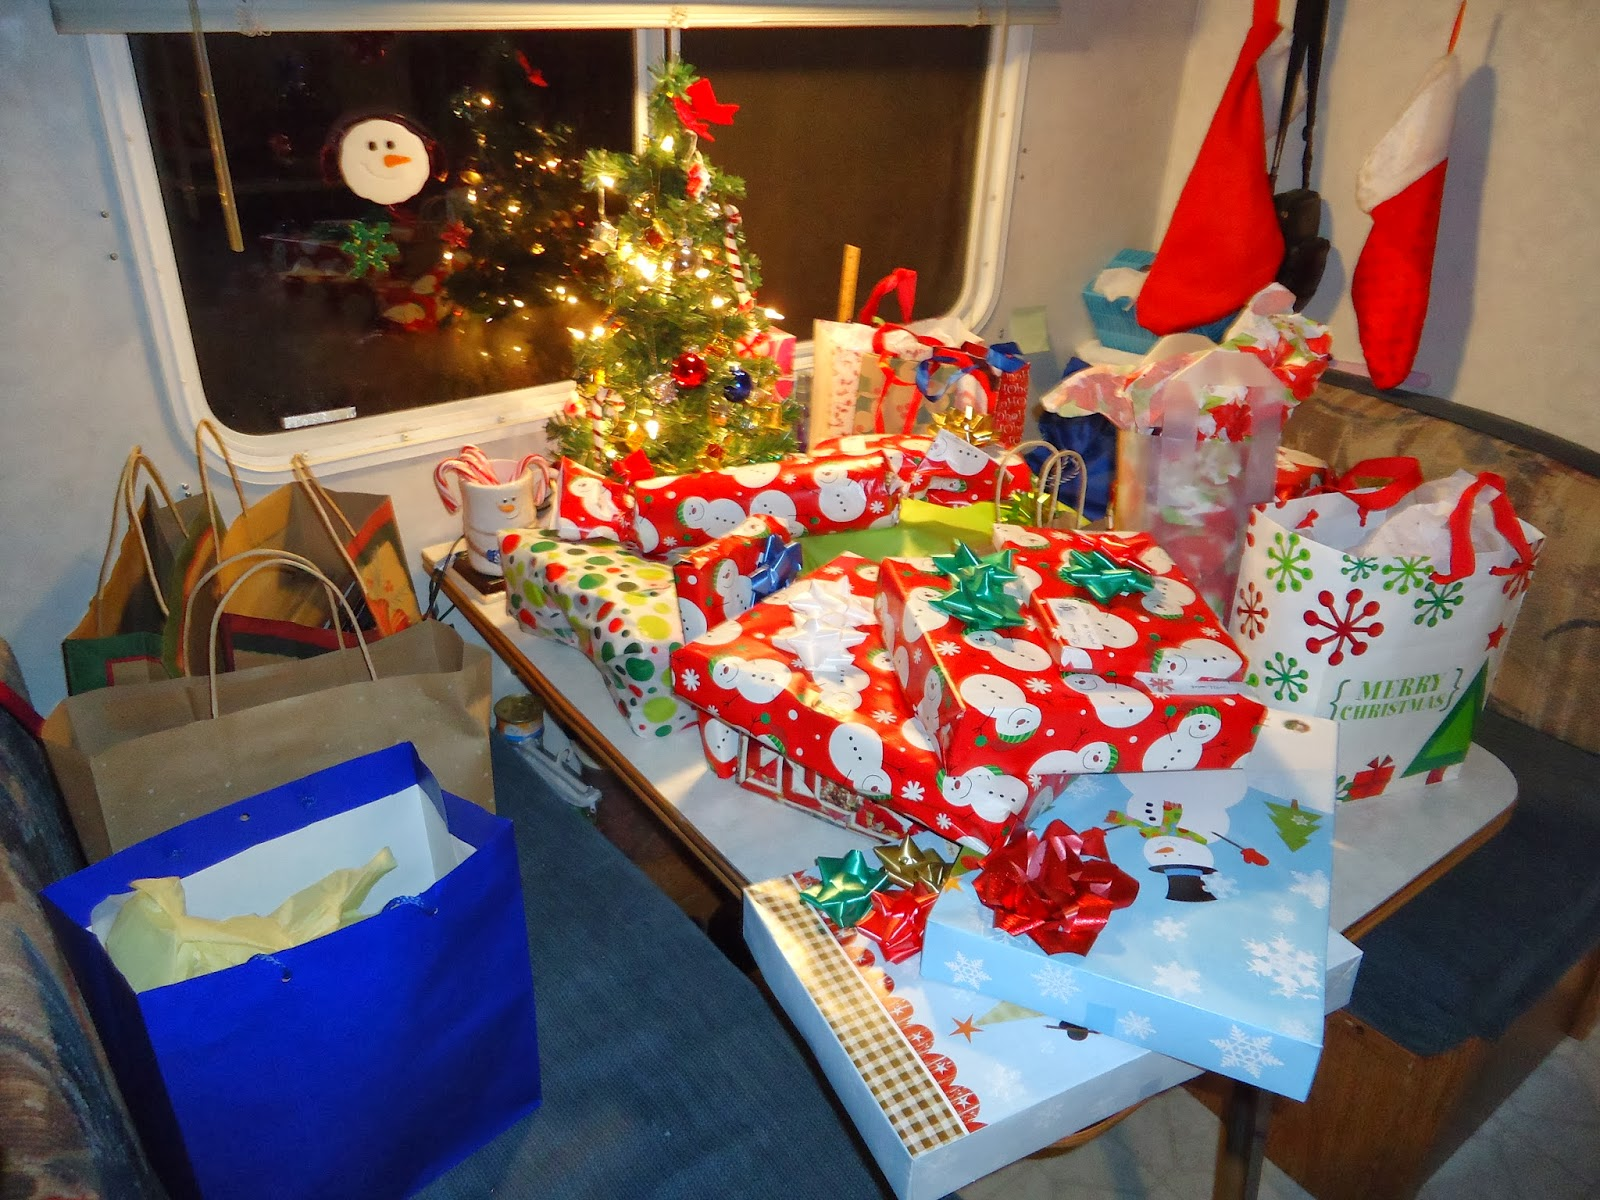 Thrifty Mom In Boise: Our First Christmas In Our Tiny House